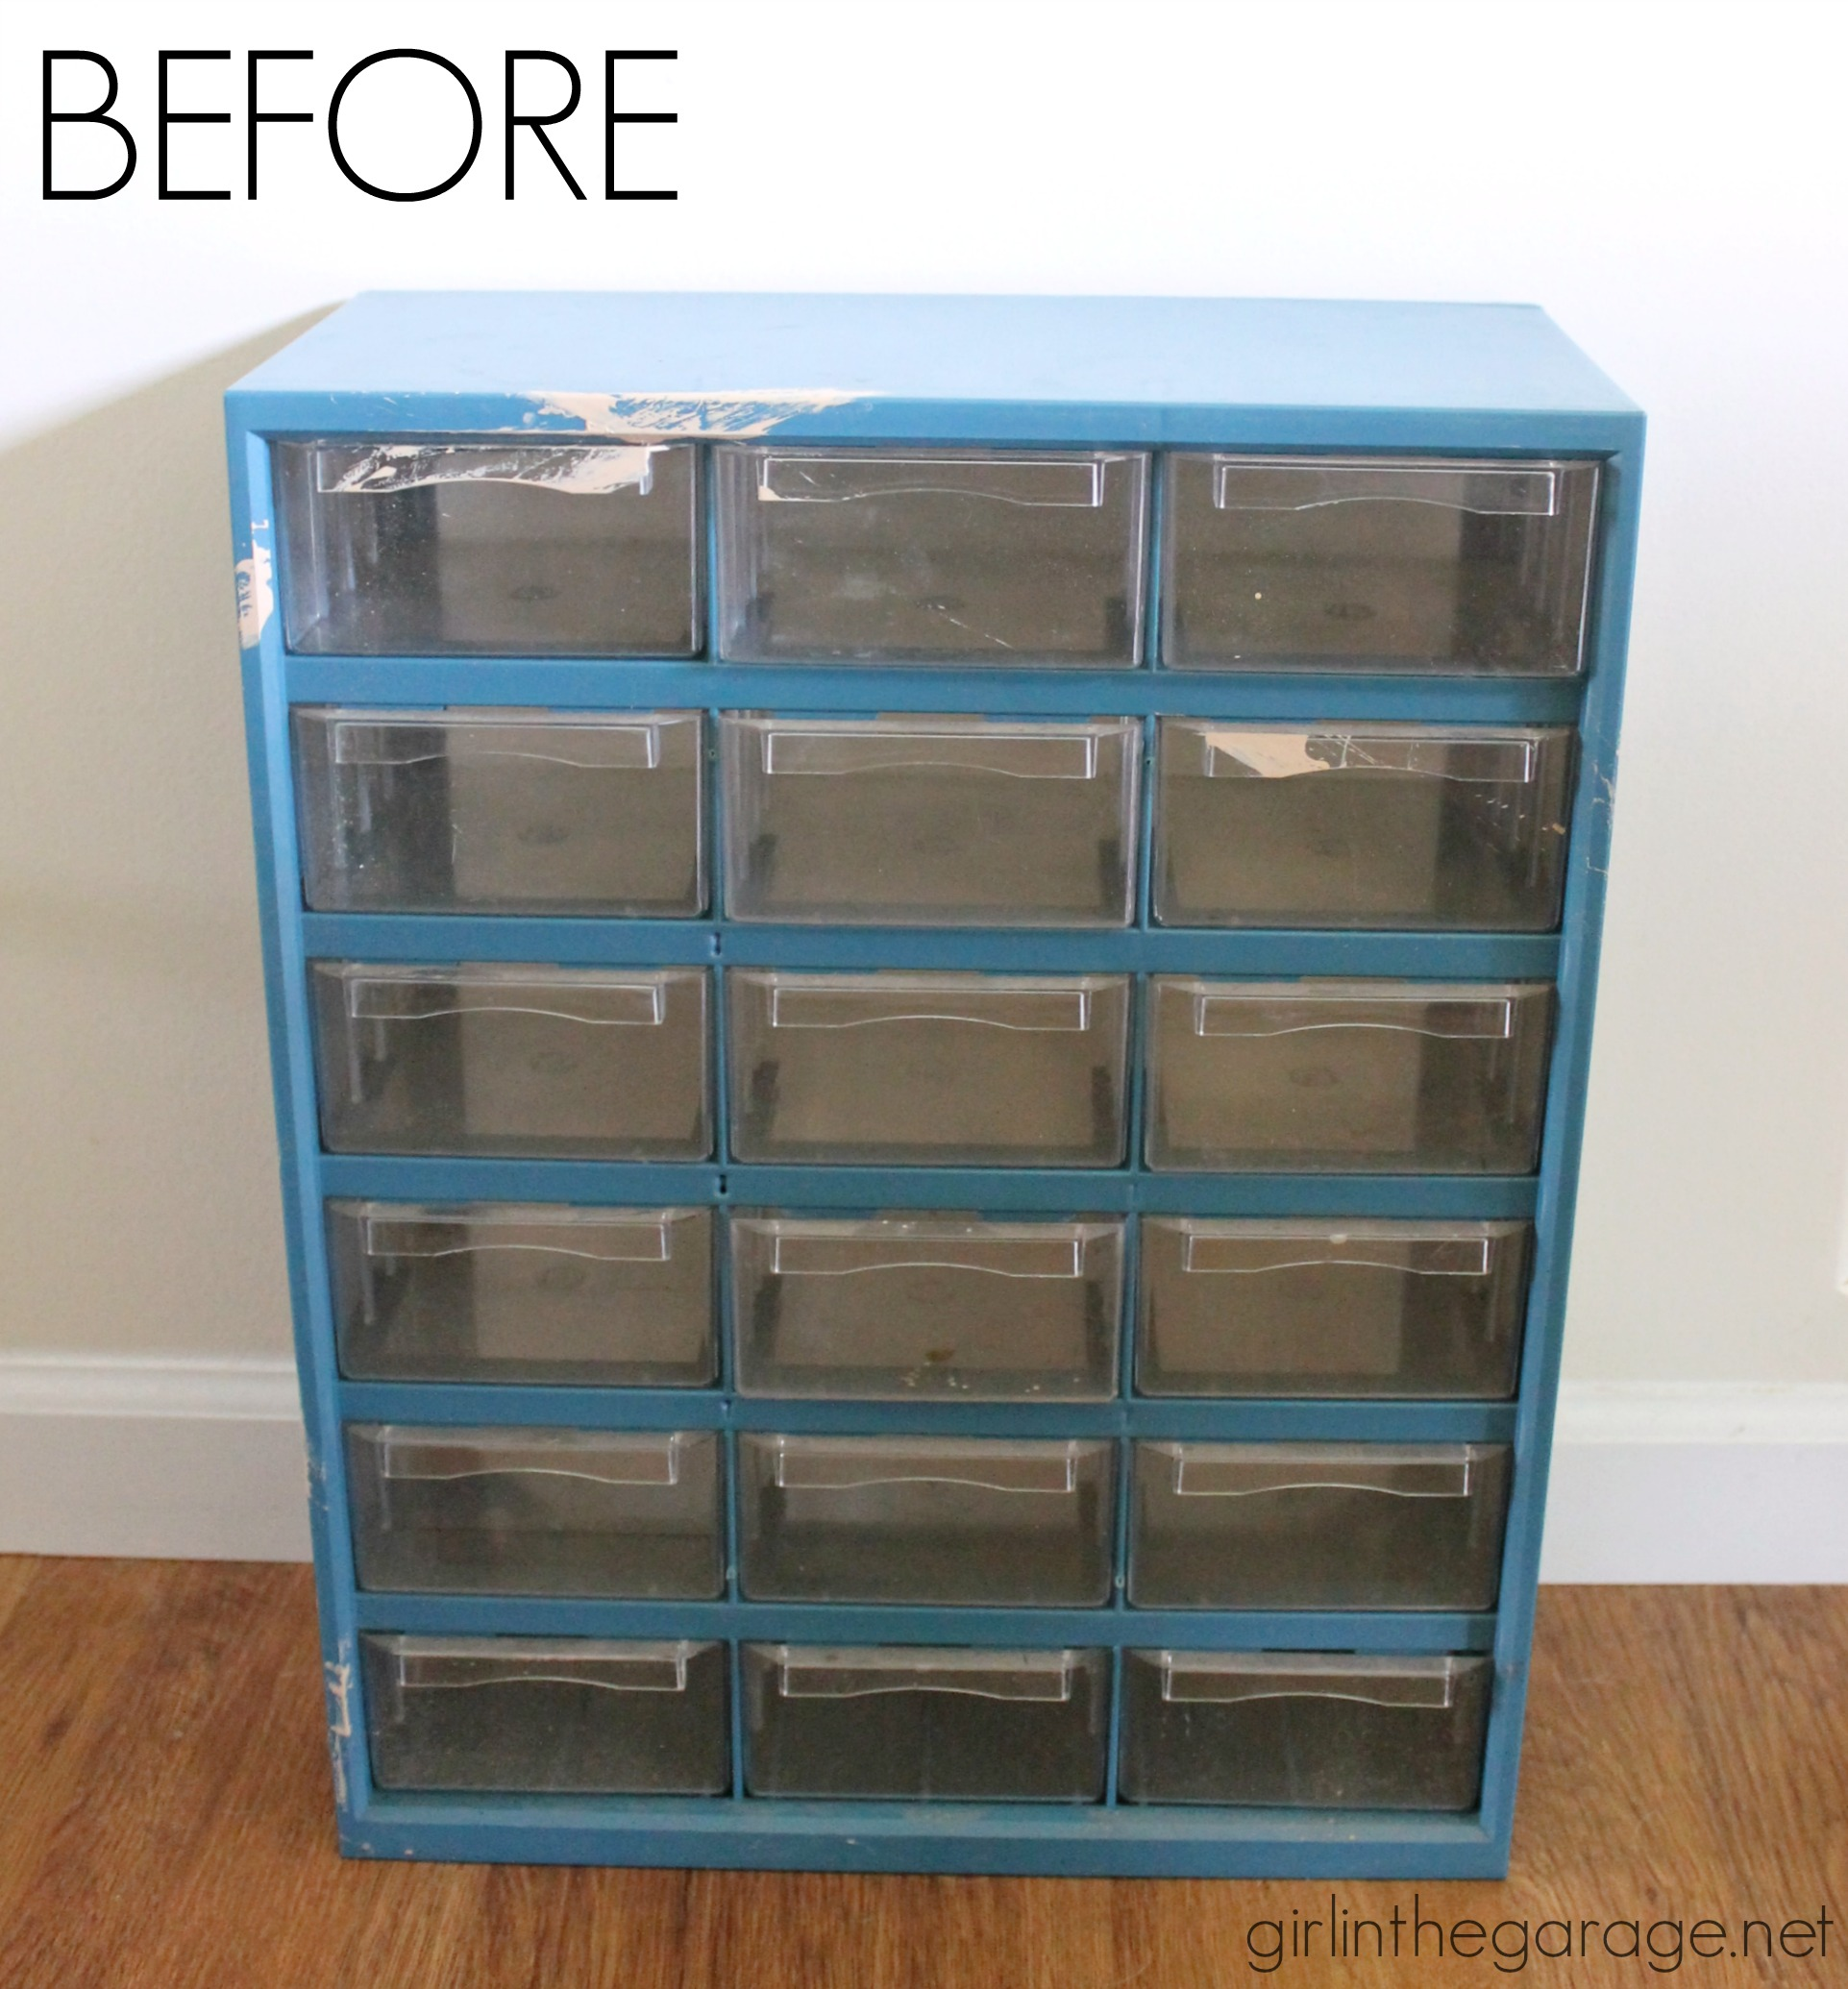 Upcycled garage storage organizer makeover - Trash to Treasure - Girl in the Garage